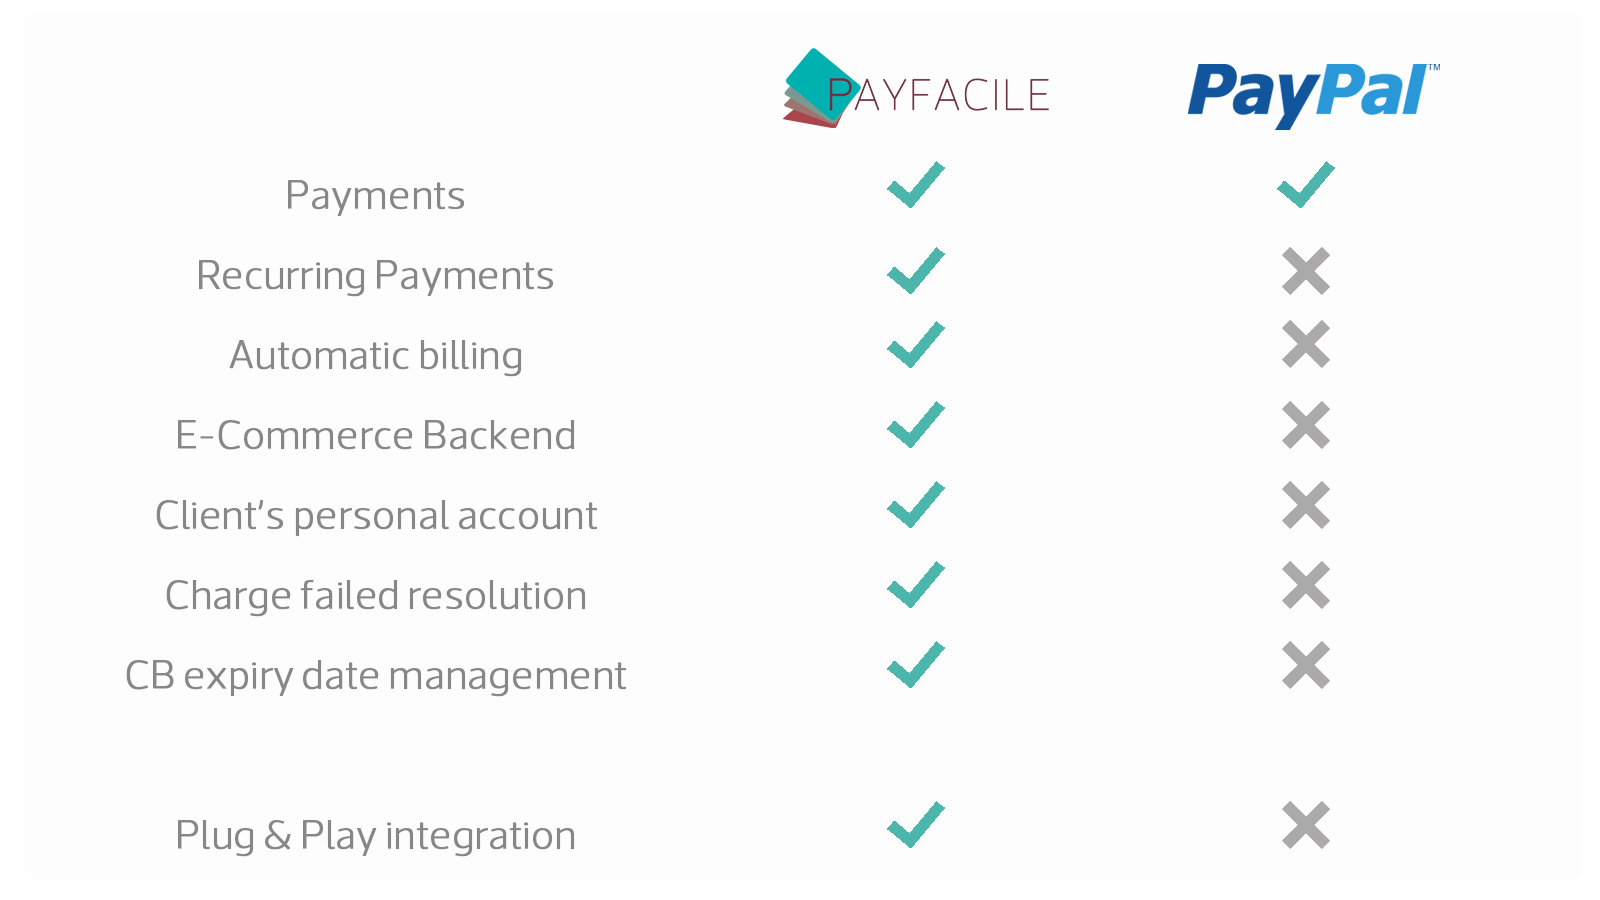 Main differences between Payfacile and Paypal.